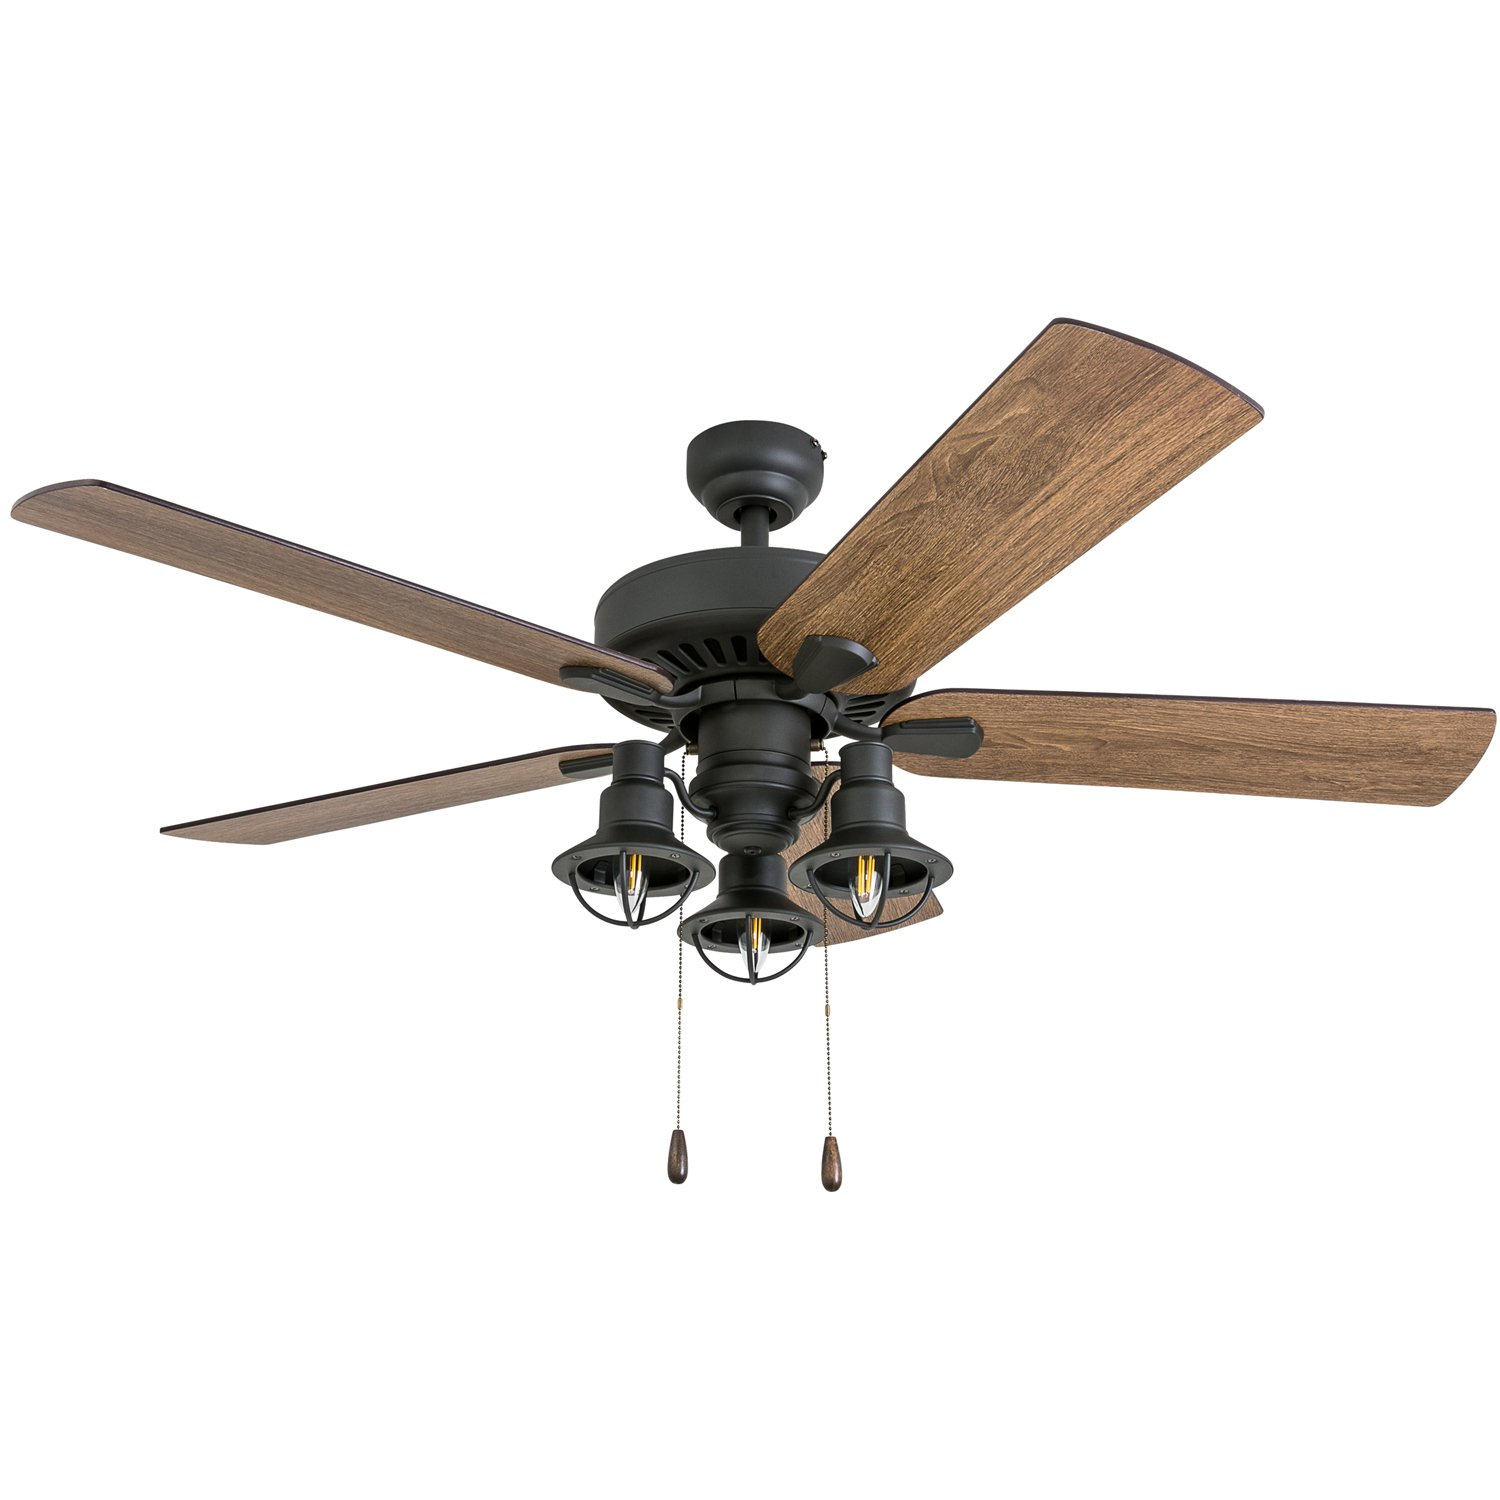 prominence home 50650-01 ennora farmhouse ceiling fan, 52